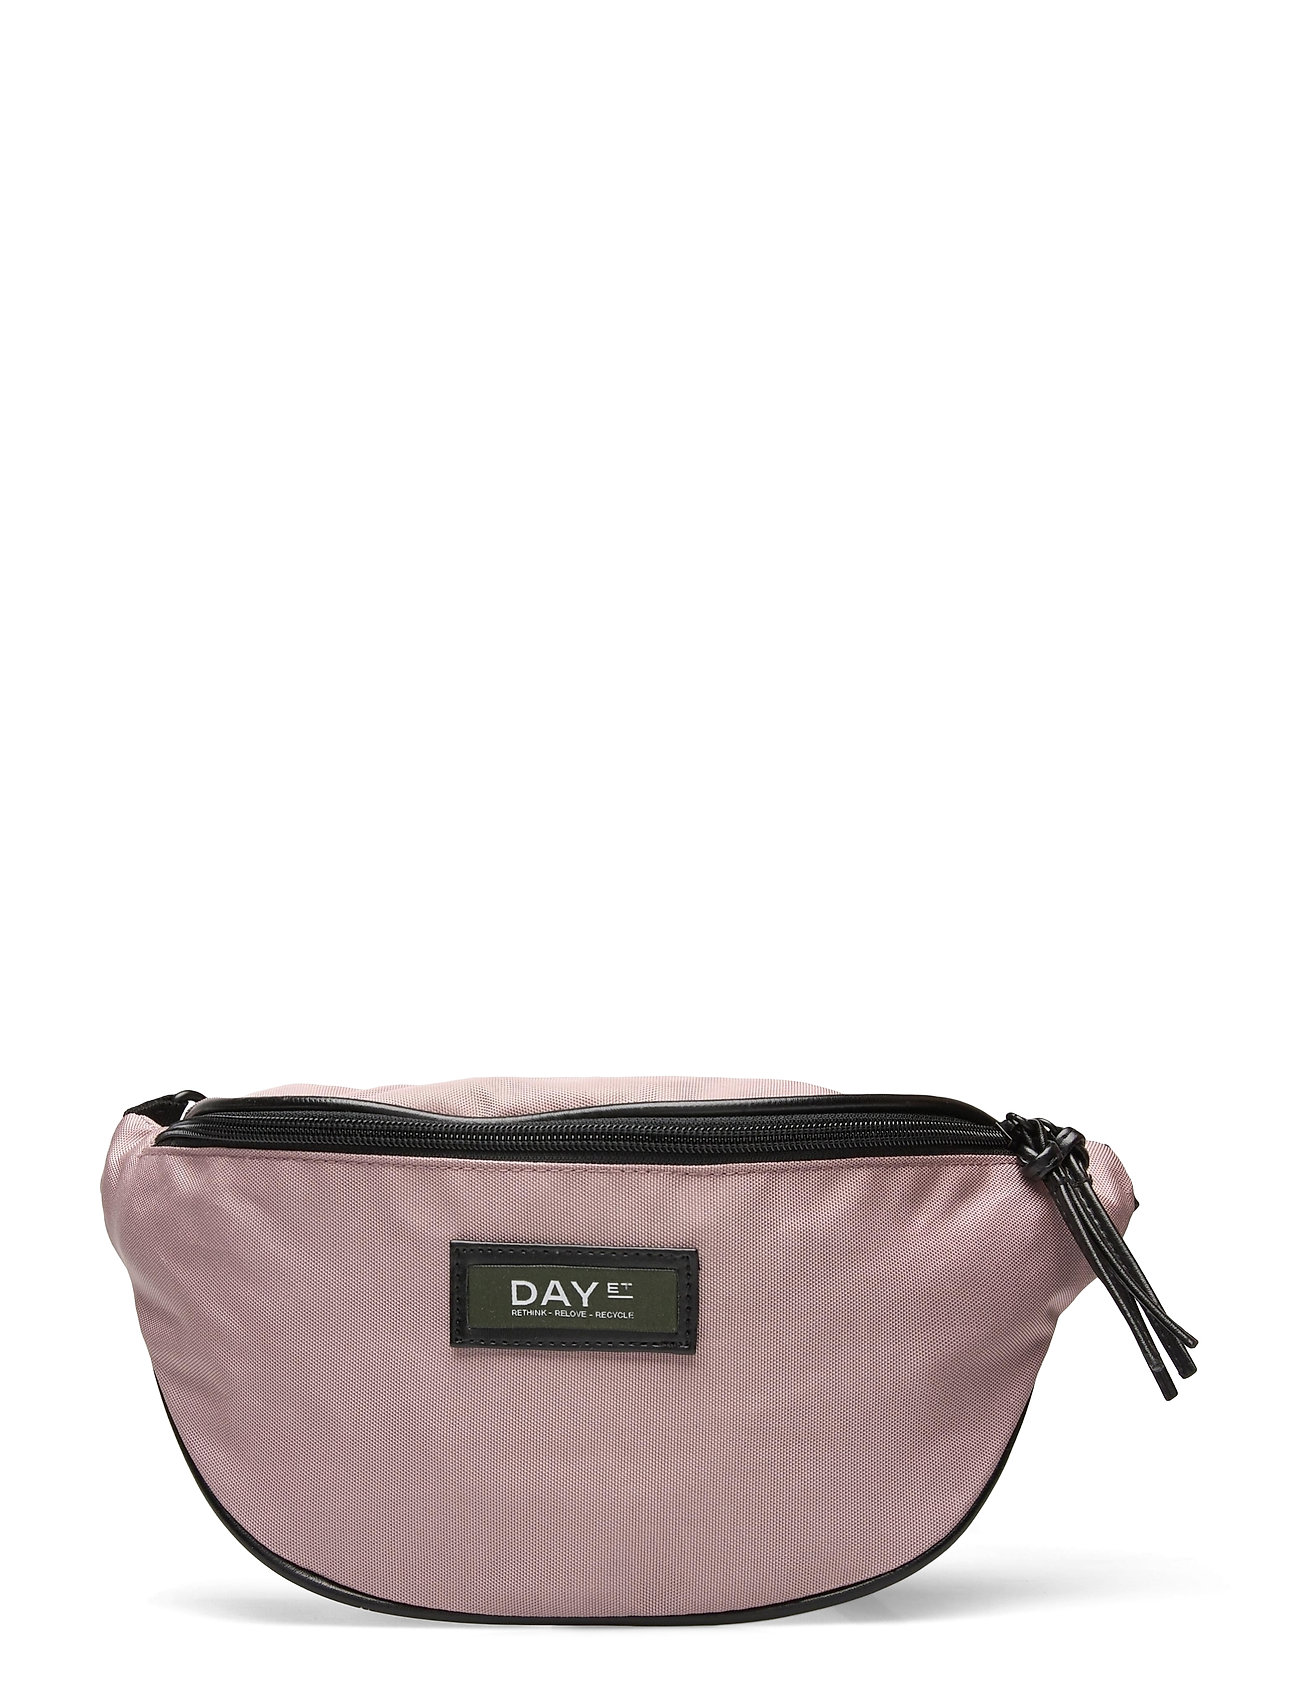 Image of Day Gweneth Re-S Bum Bum Bag Taske Lyserød DAY Et (3476116347)